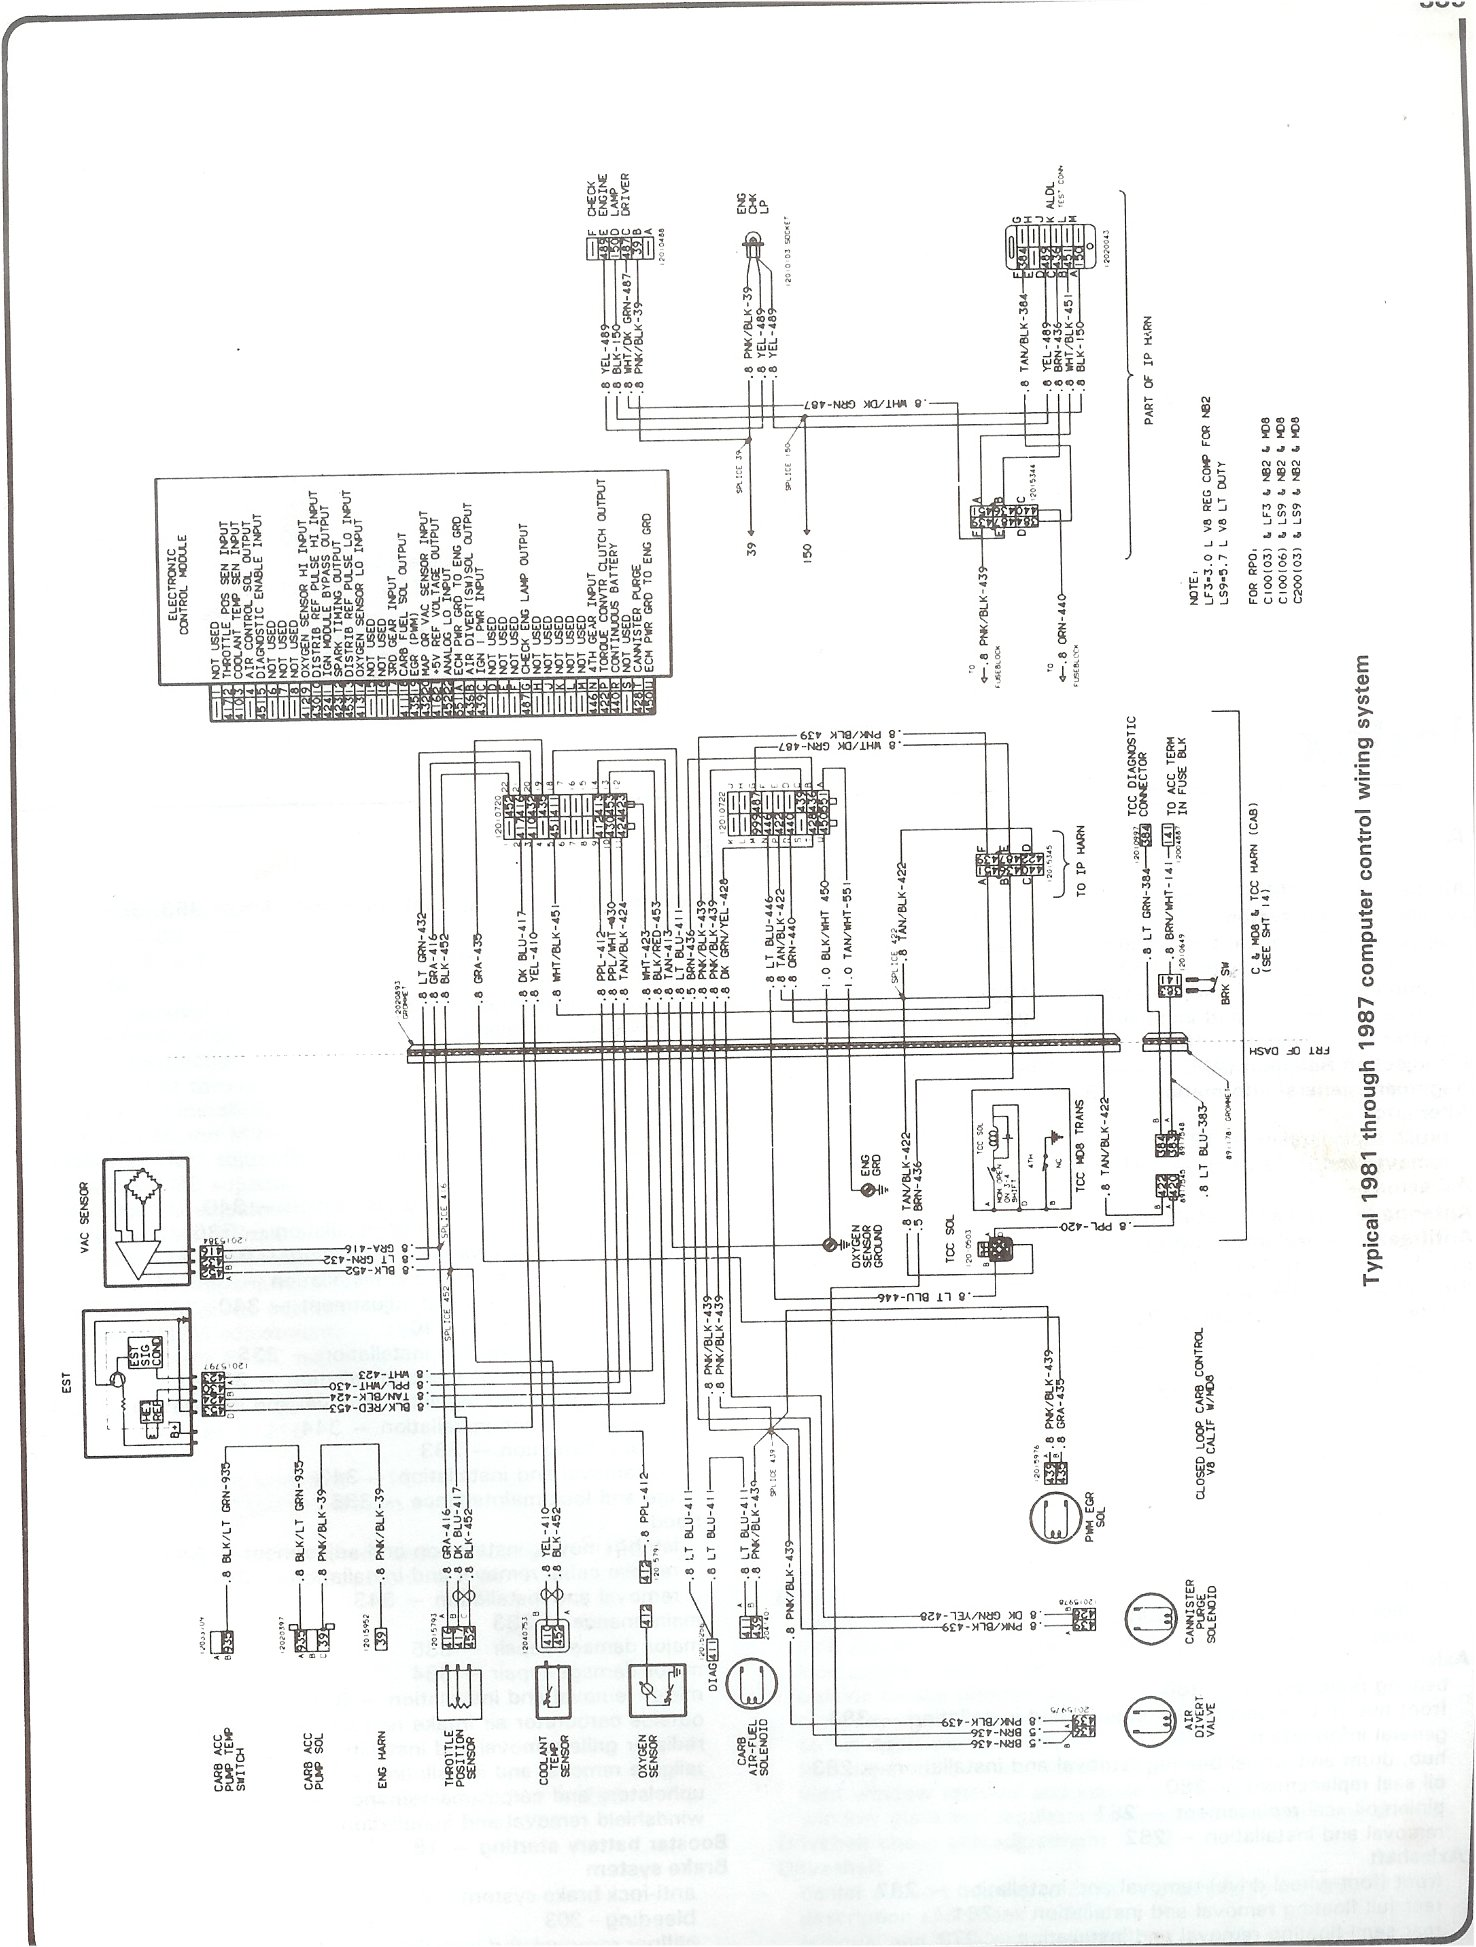 81 87_computer_control_wiring complete 73 87 wiring diagrams  at bayanpartner.co